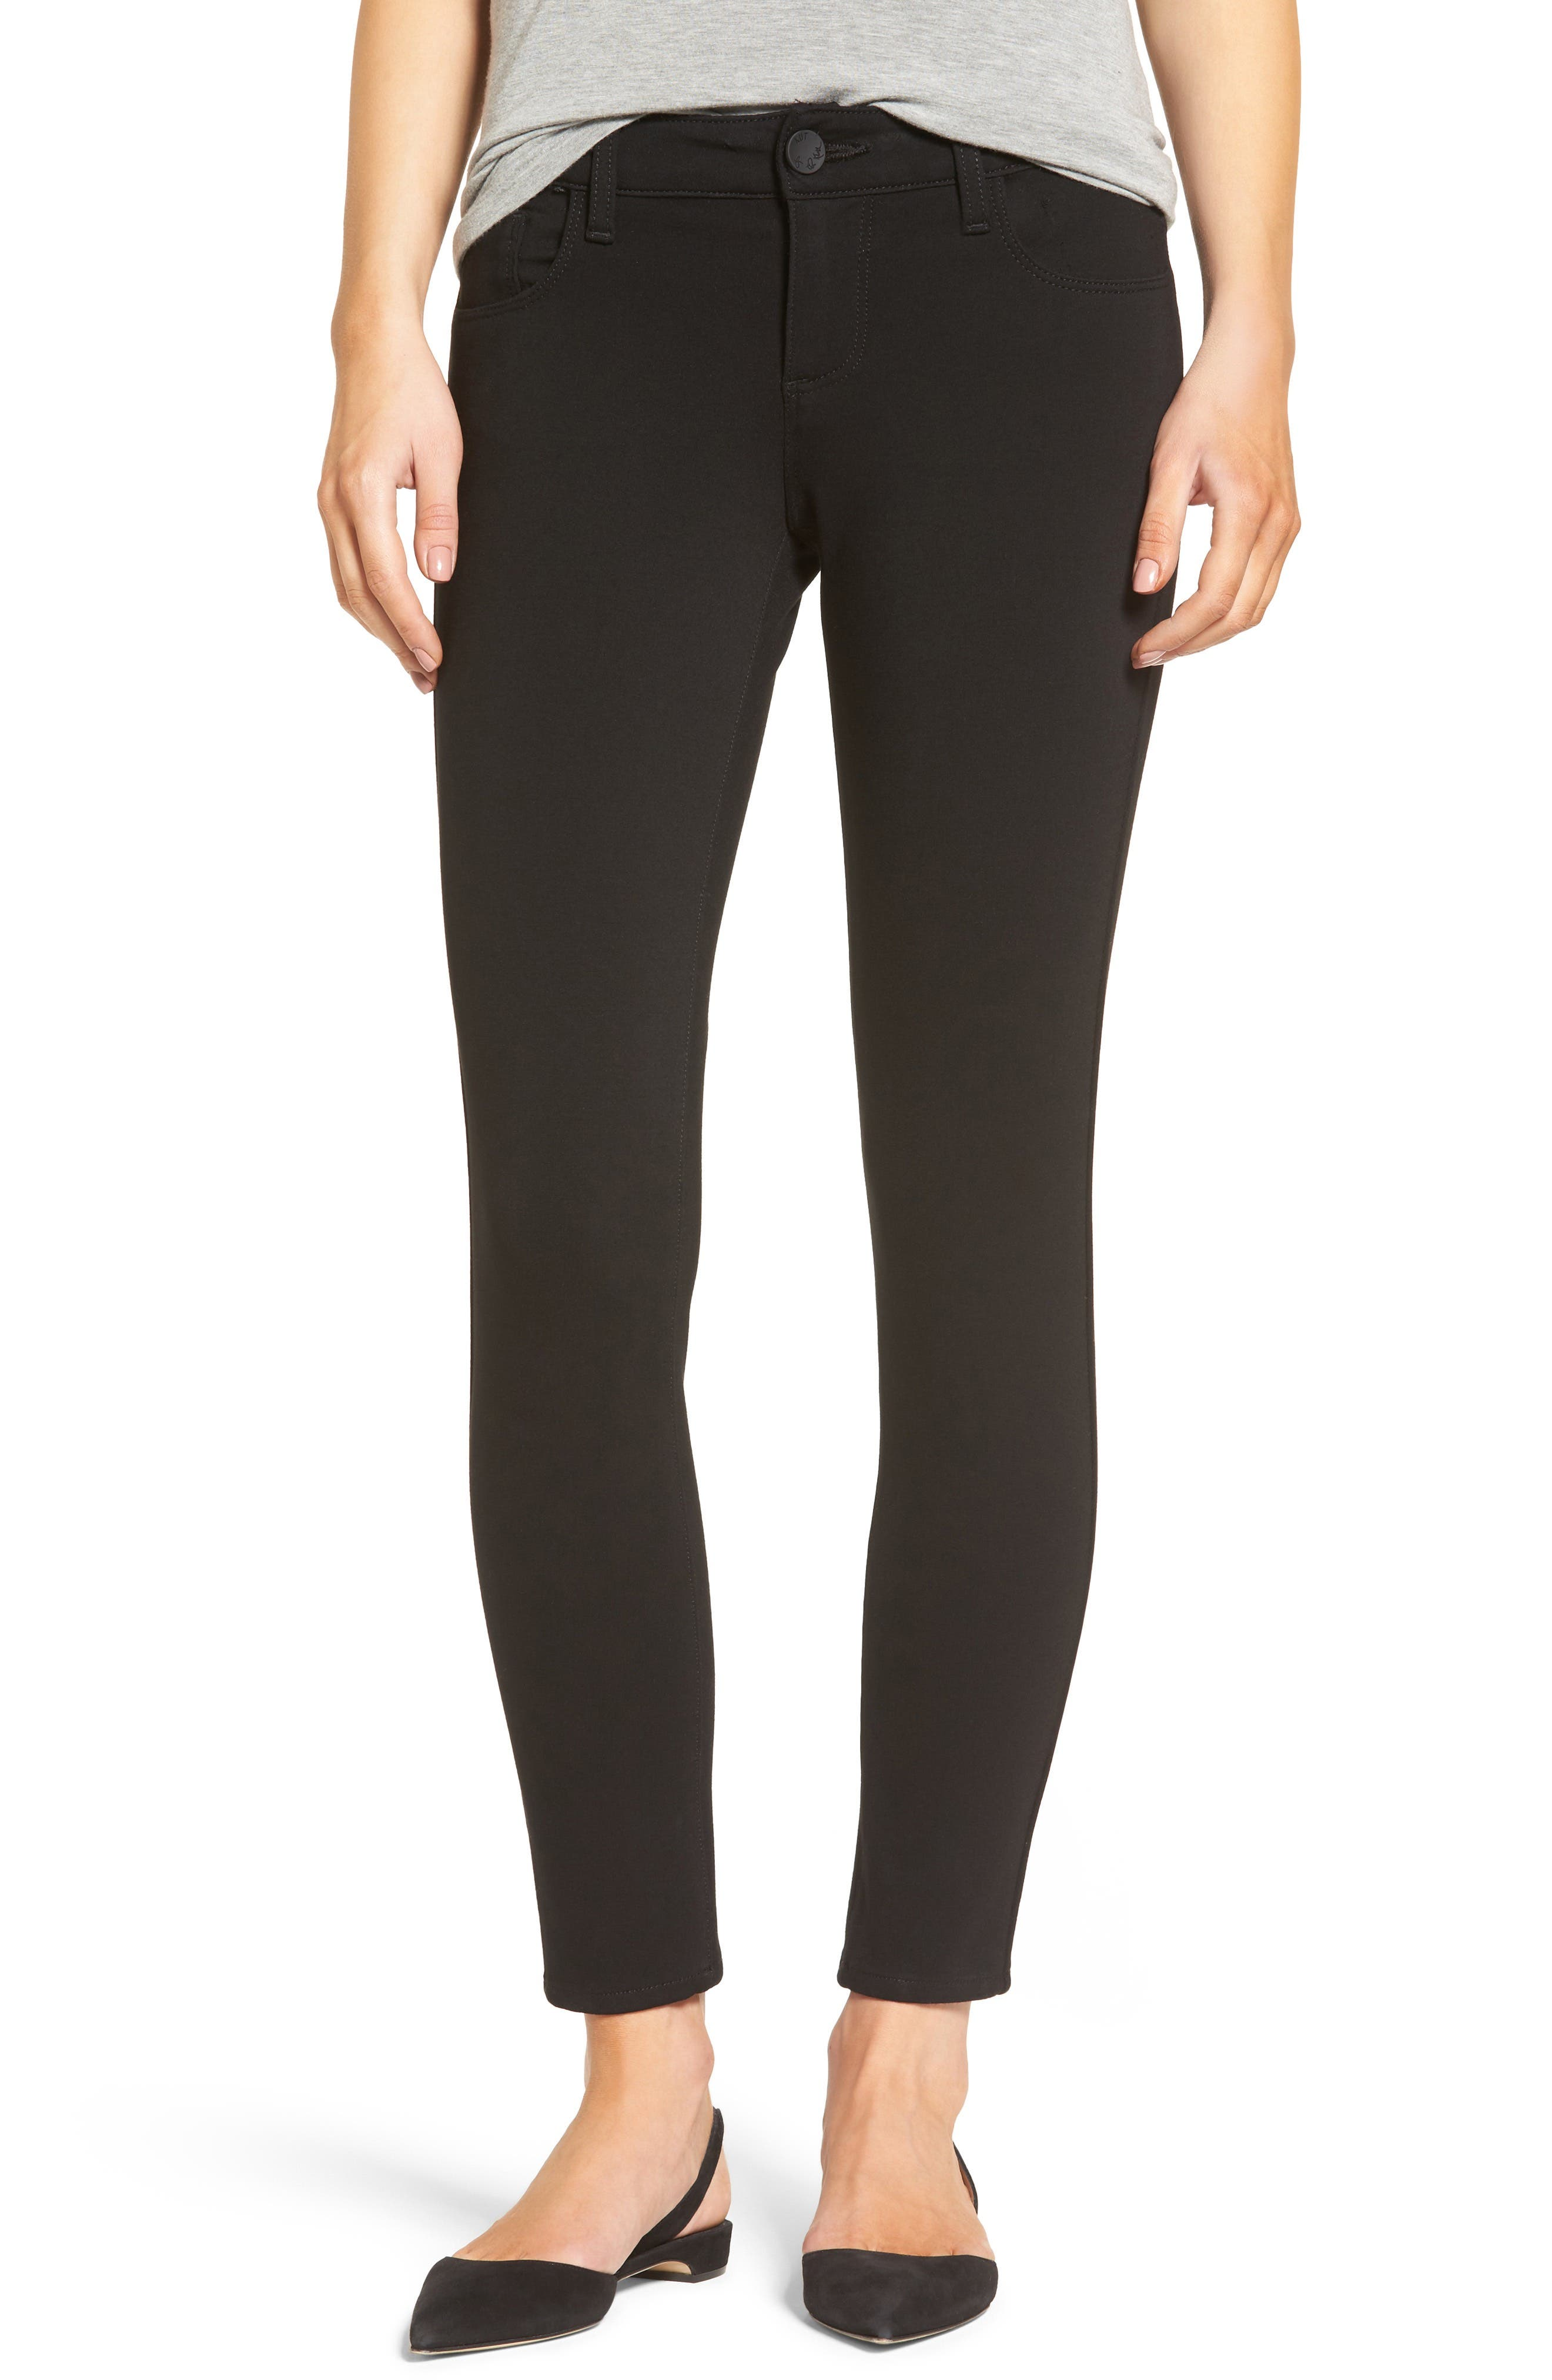 KUT from the Kloth Donna Ponte Knit Skinny Jeans (Regular & Petite)